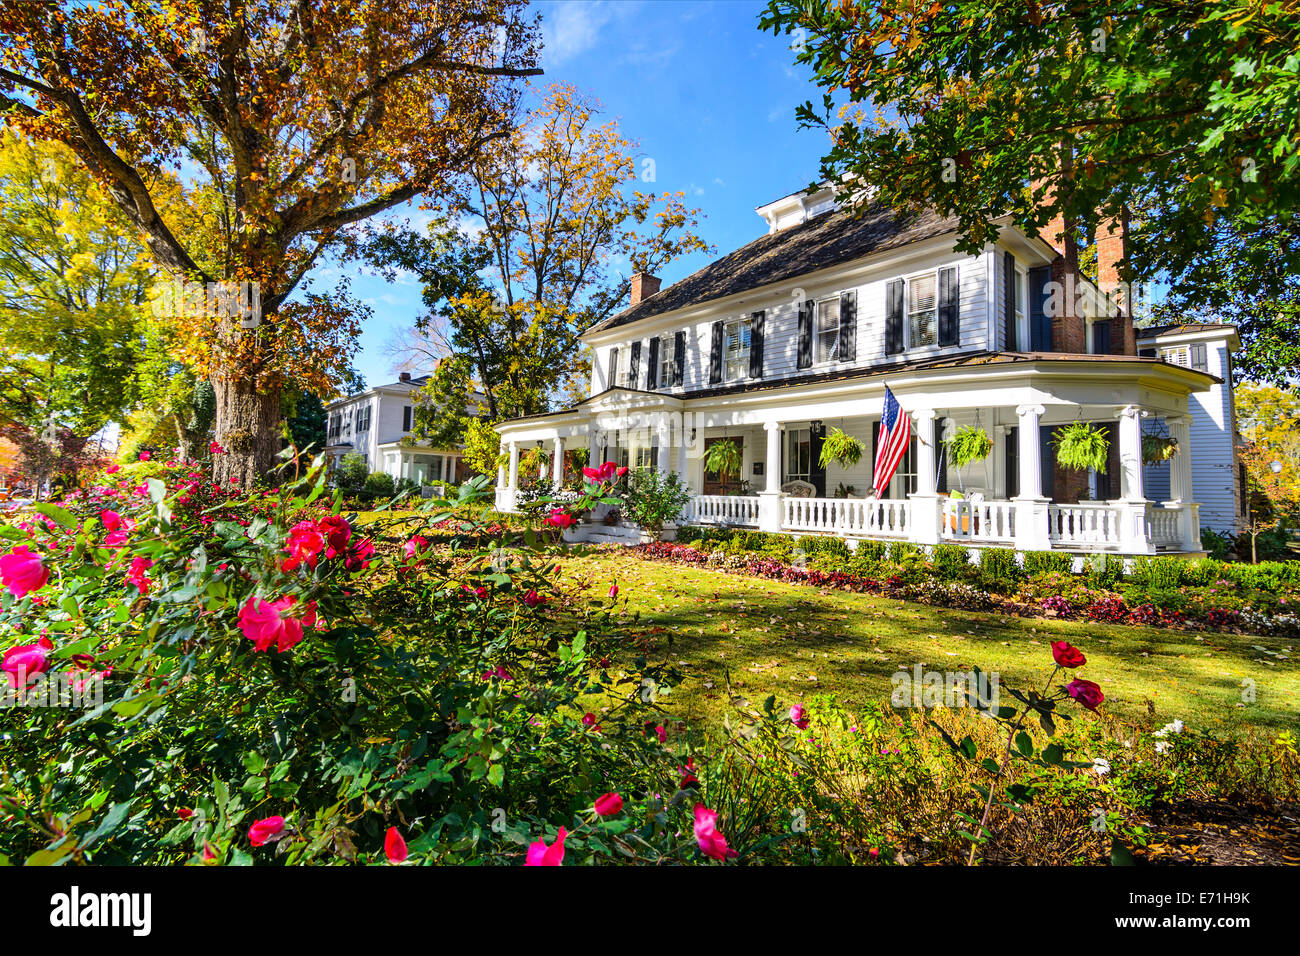 Madison, Georgia, USA at the antebellum homes district. - Stock Image